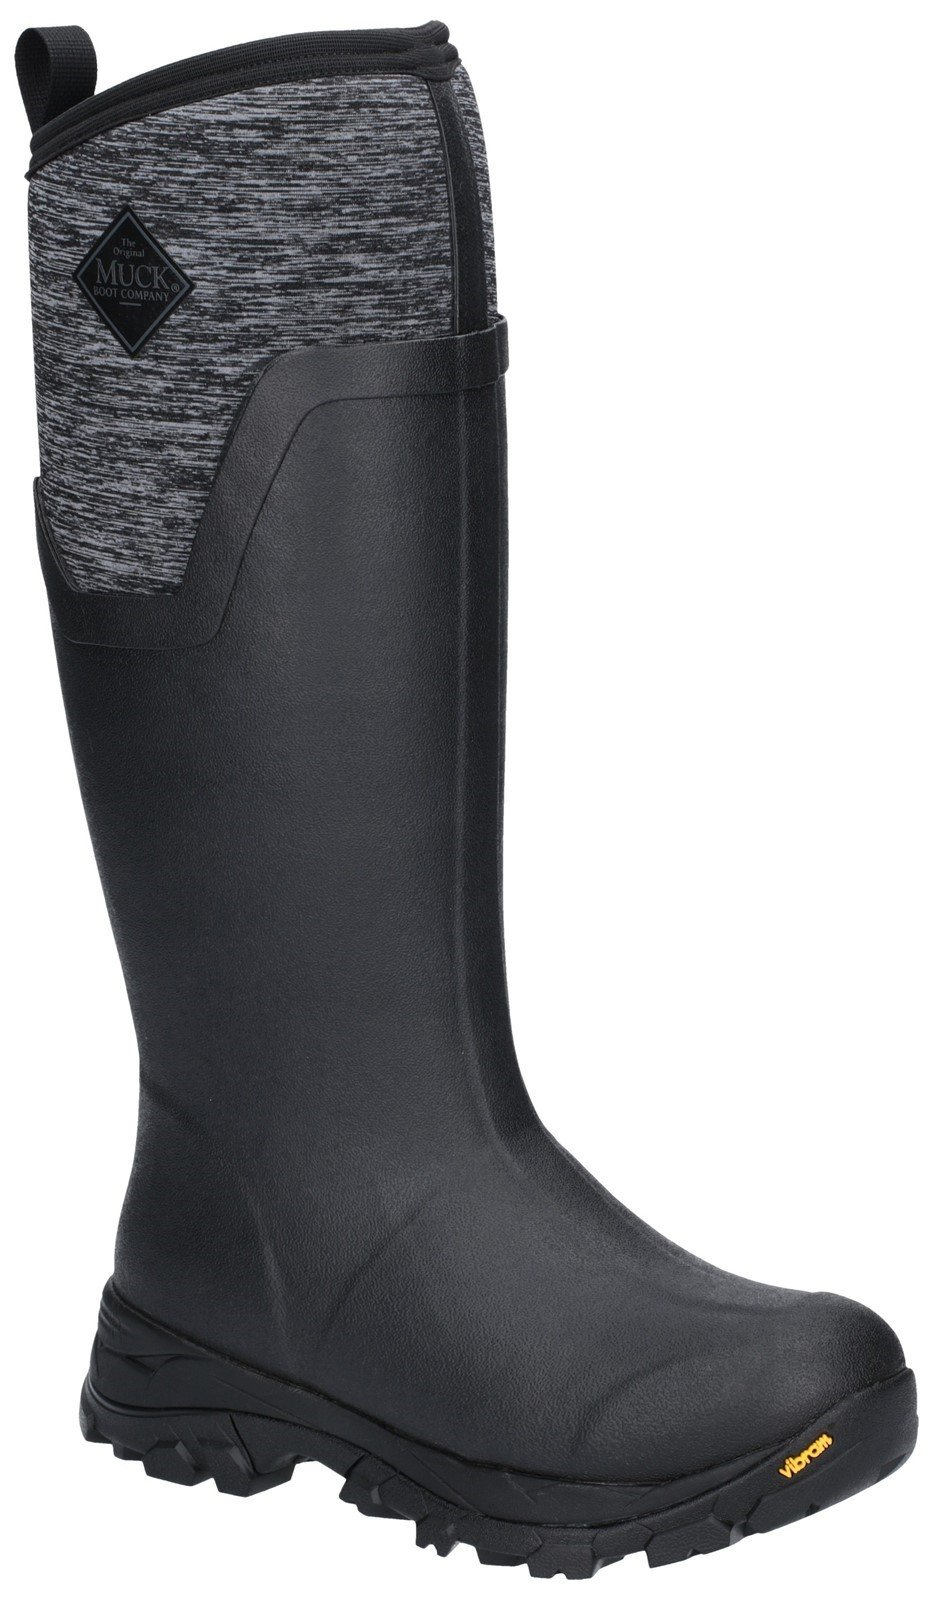 Muck Boots Unisex Arctic Ice Tall Extreme Conditions Boot Various Colours 26031 - Black/Heather 3